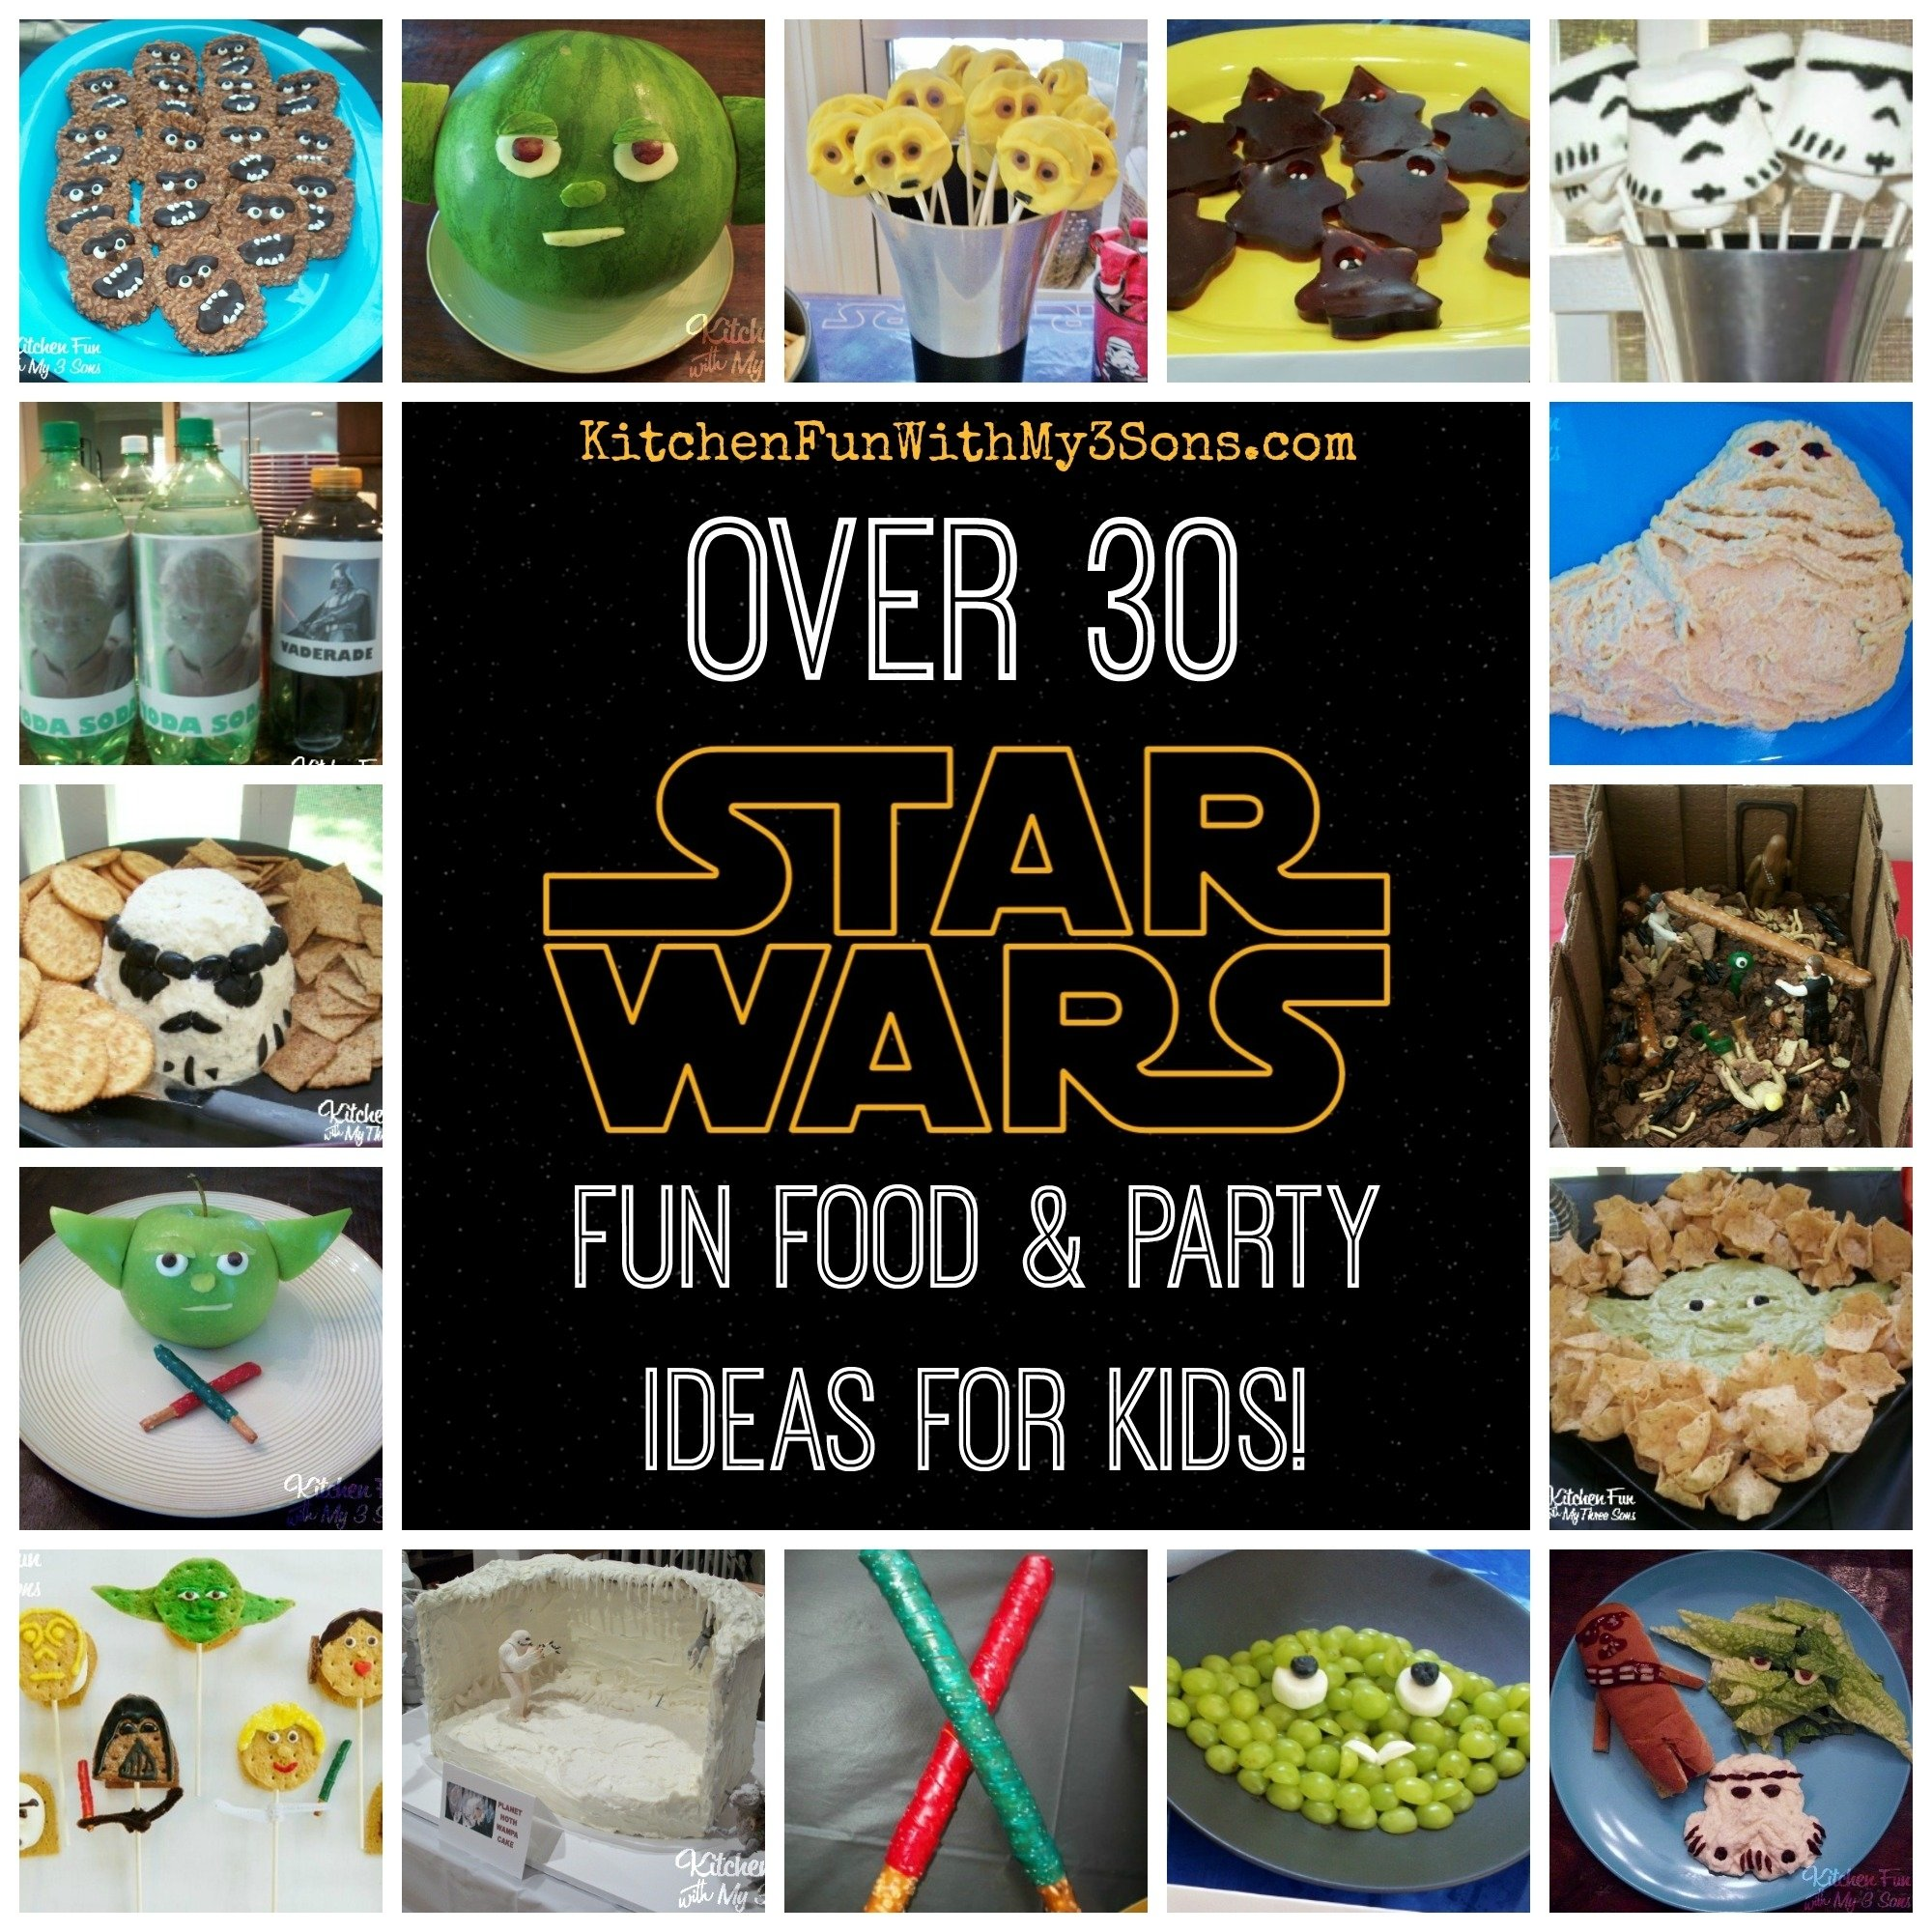 10 Unique Star Wars Party Food Ideas star wars fun food party ideasour full collection kitchen 2020